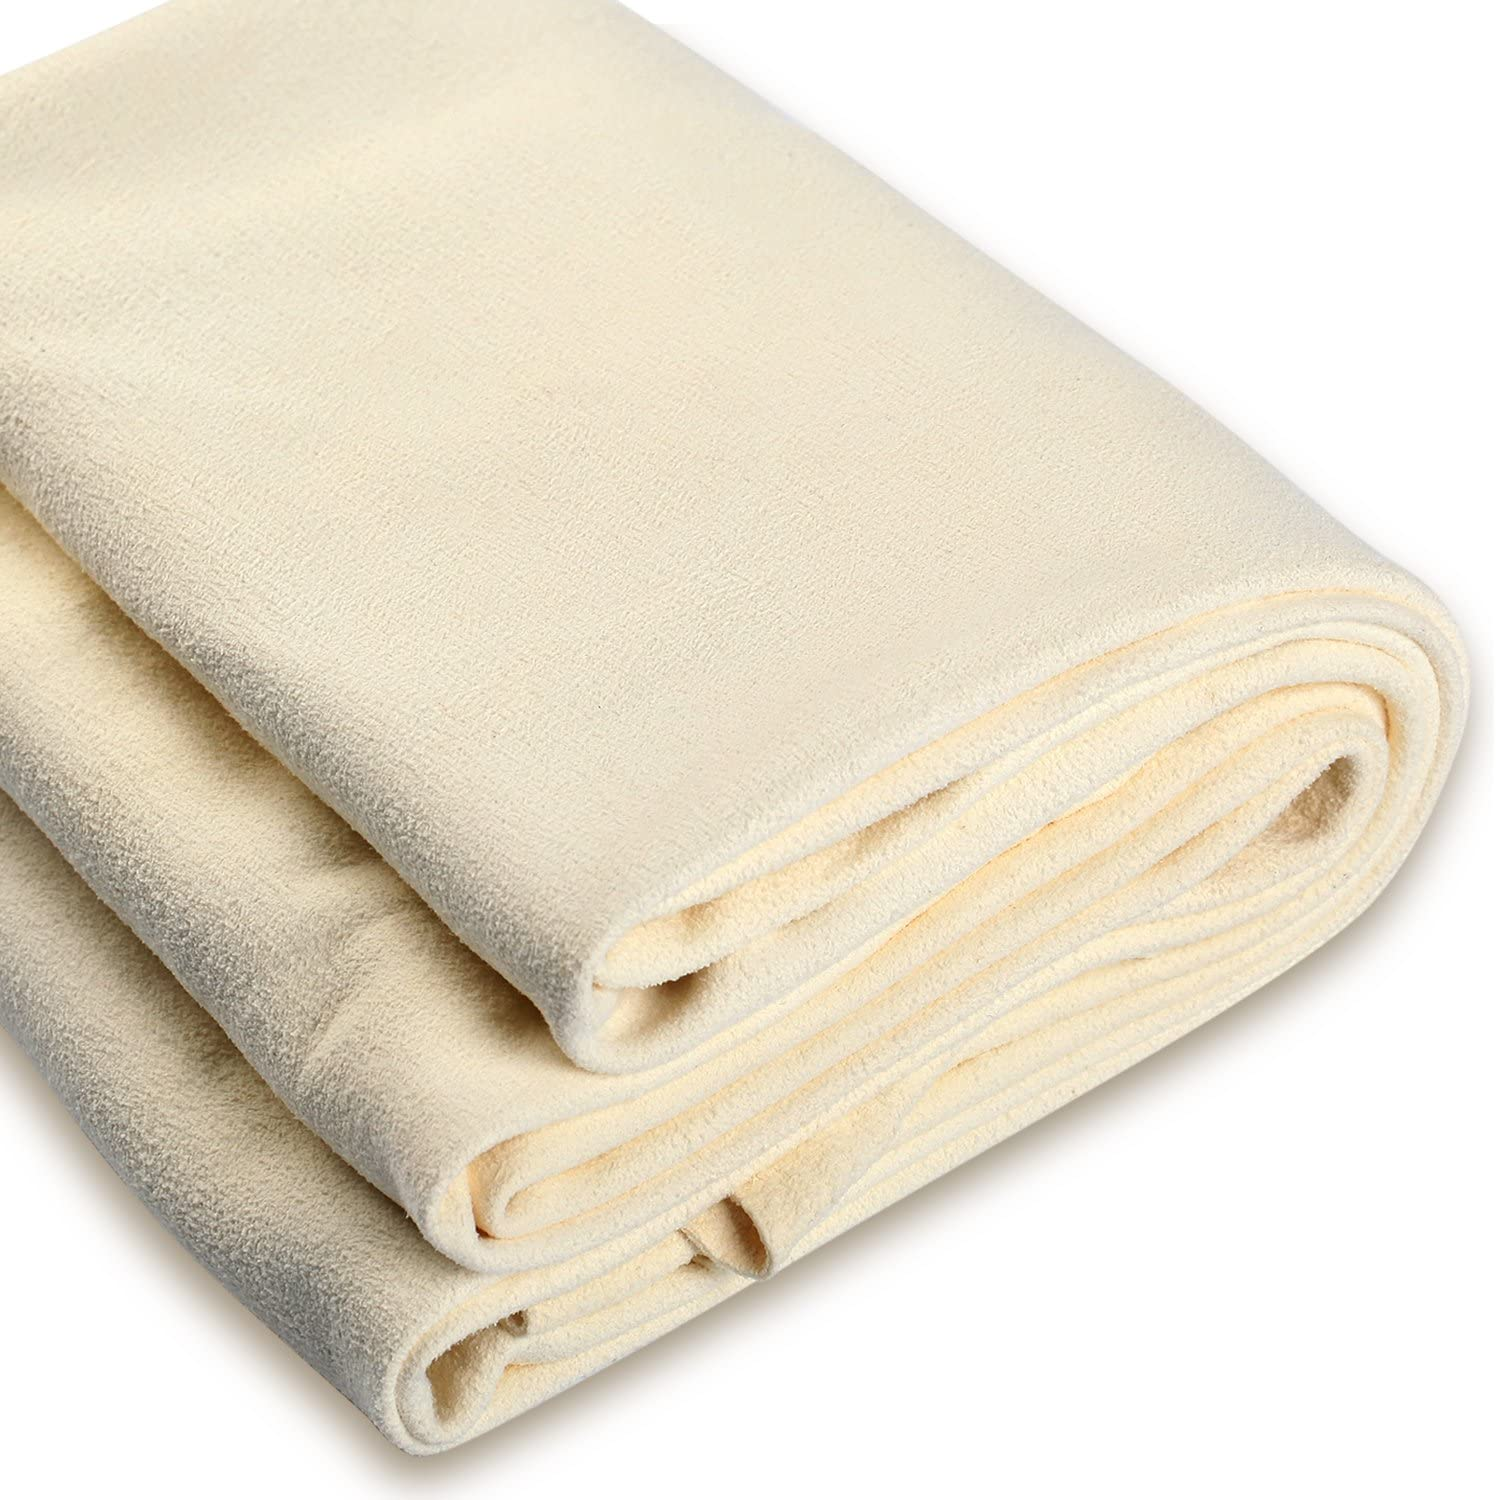 Natural Chamois Leather Car Cleaning Cloth Absorbent Home Washing Drying Towel